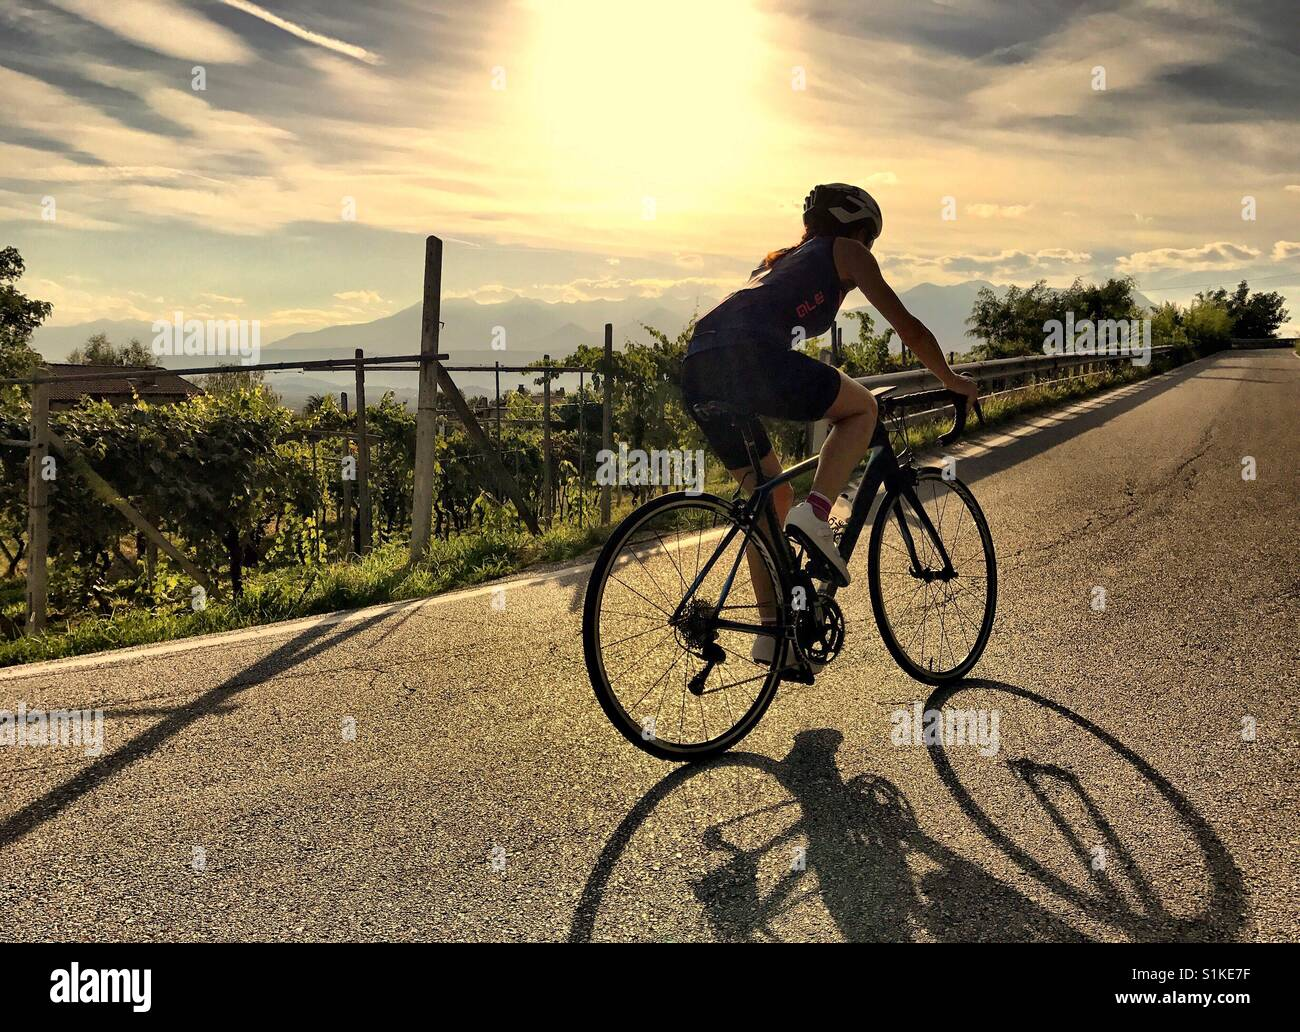 Golden Hour Cycling - Stock Image